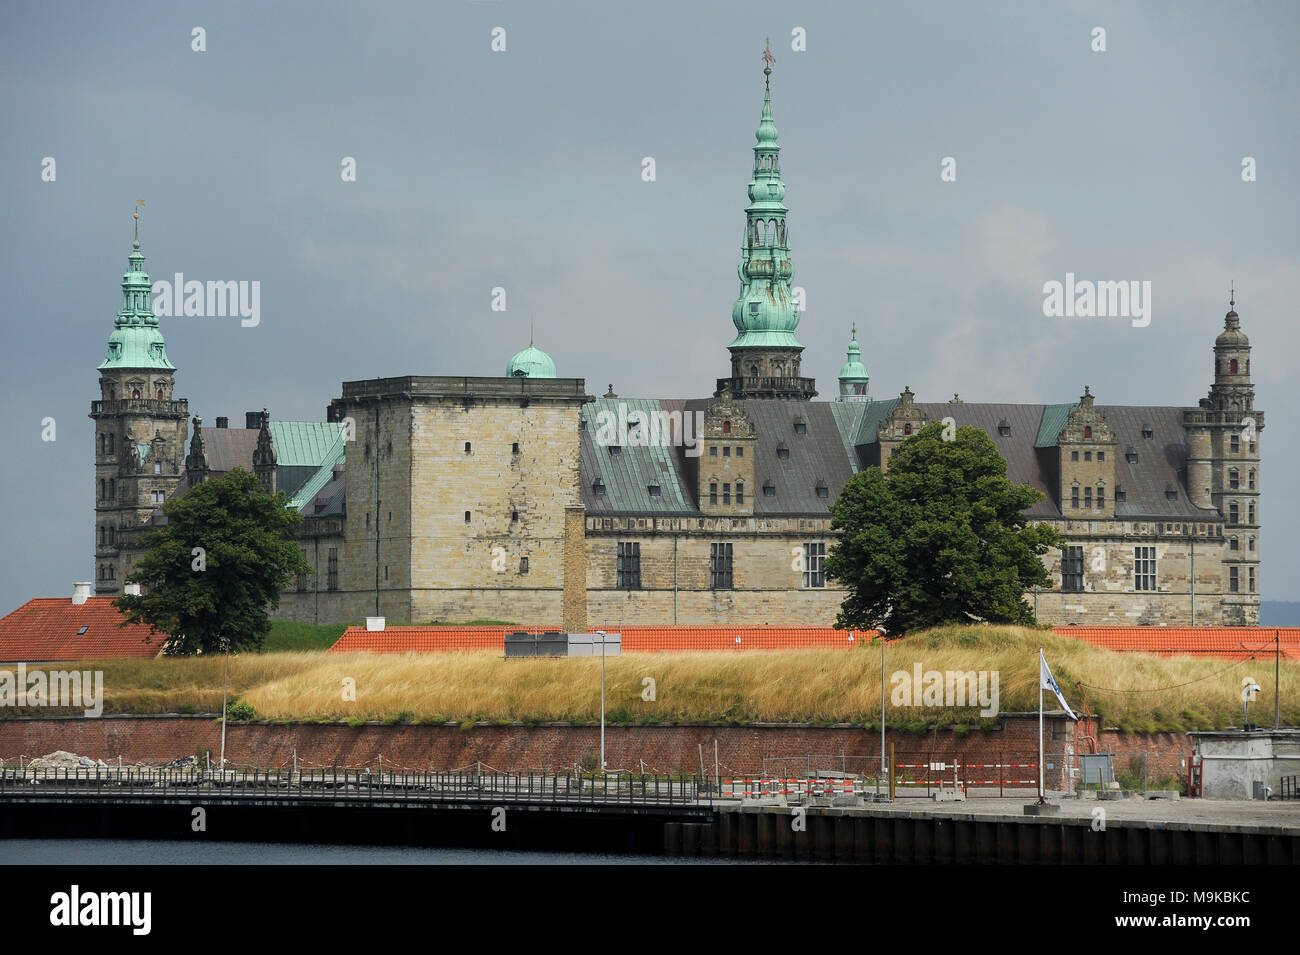 Royal Palace of Kronborg in Helsingor, Capital Region of Denmark, Denmark. August 15th 2010, built in XV century as Krogen fortress by king Eric of Po - Stock Image